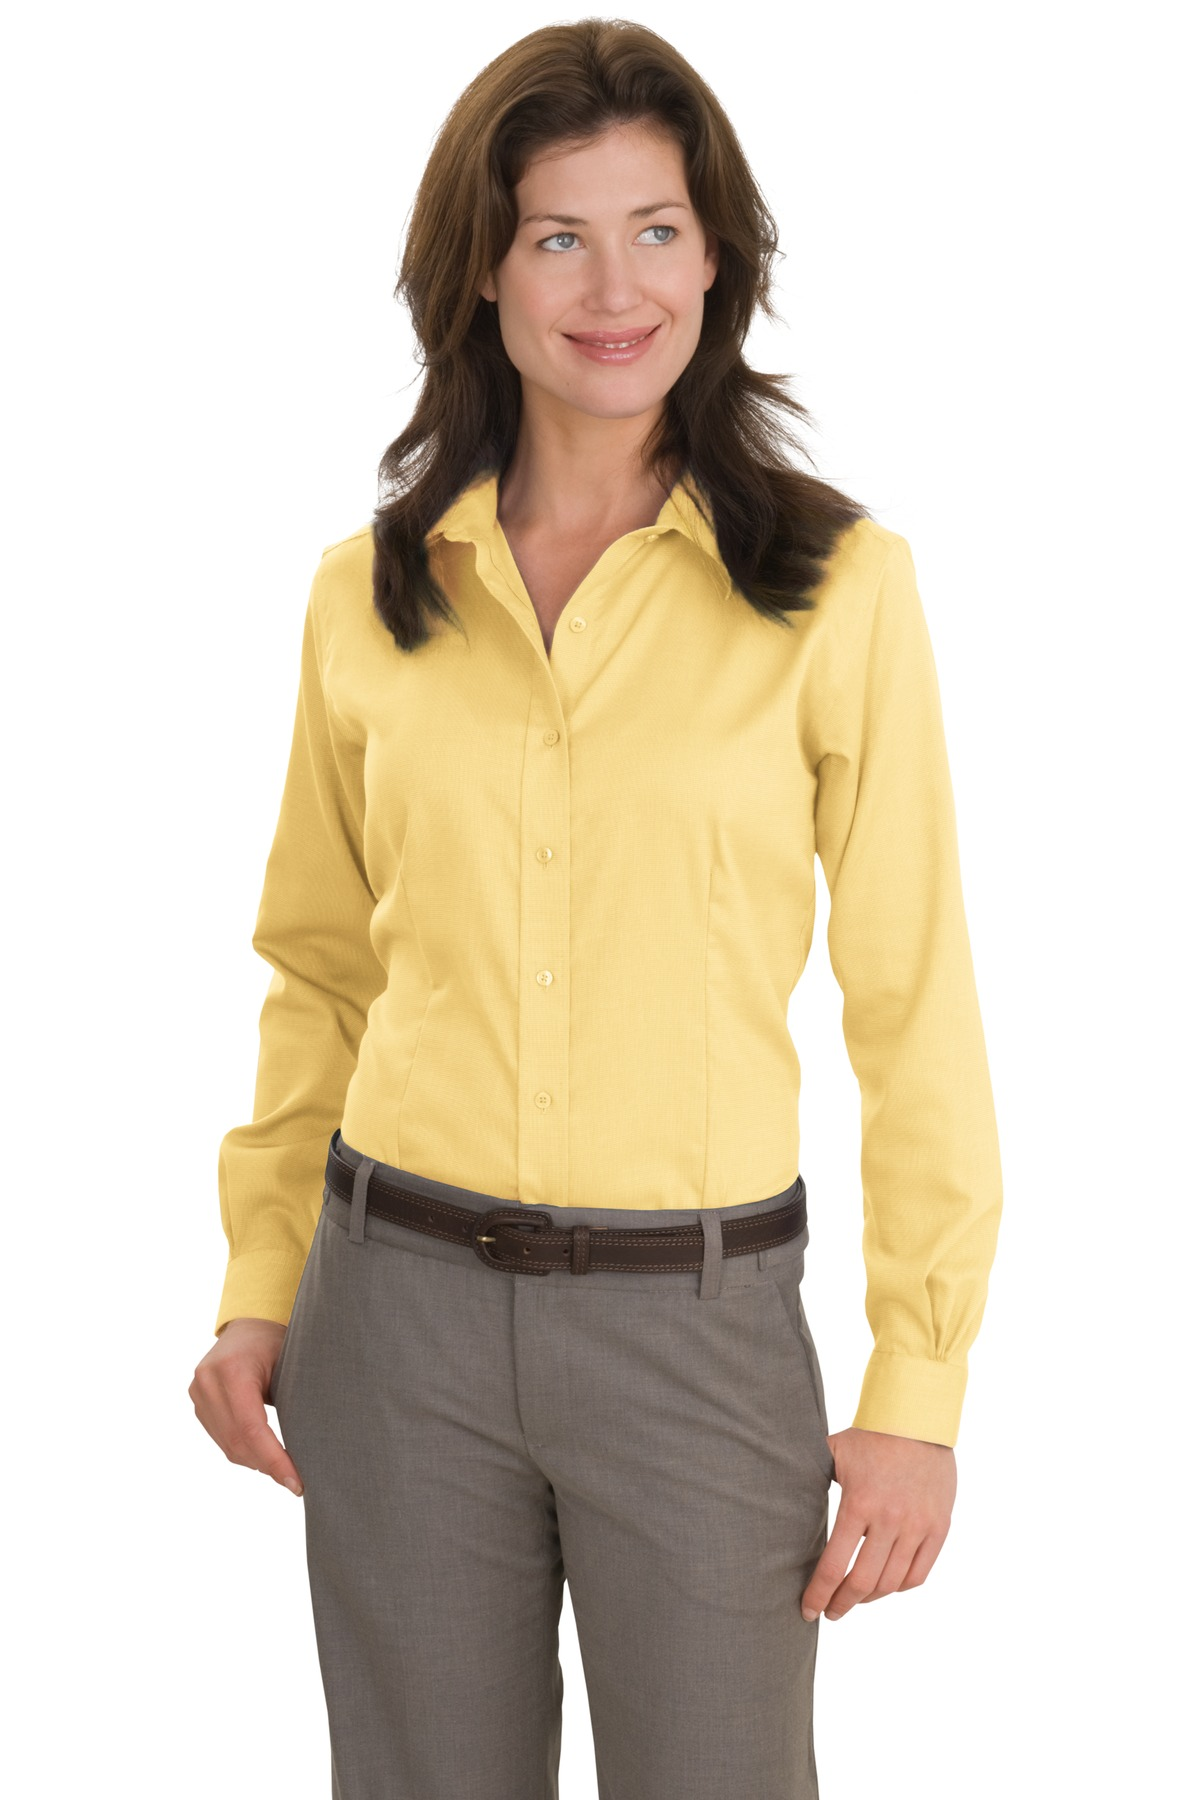 Red house ladies non iron shirt womens button down work for Ladies non iron shirts